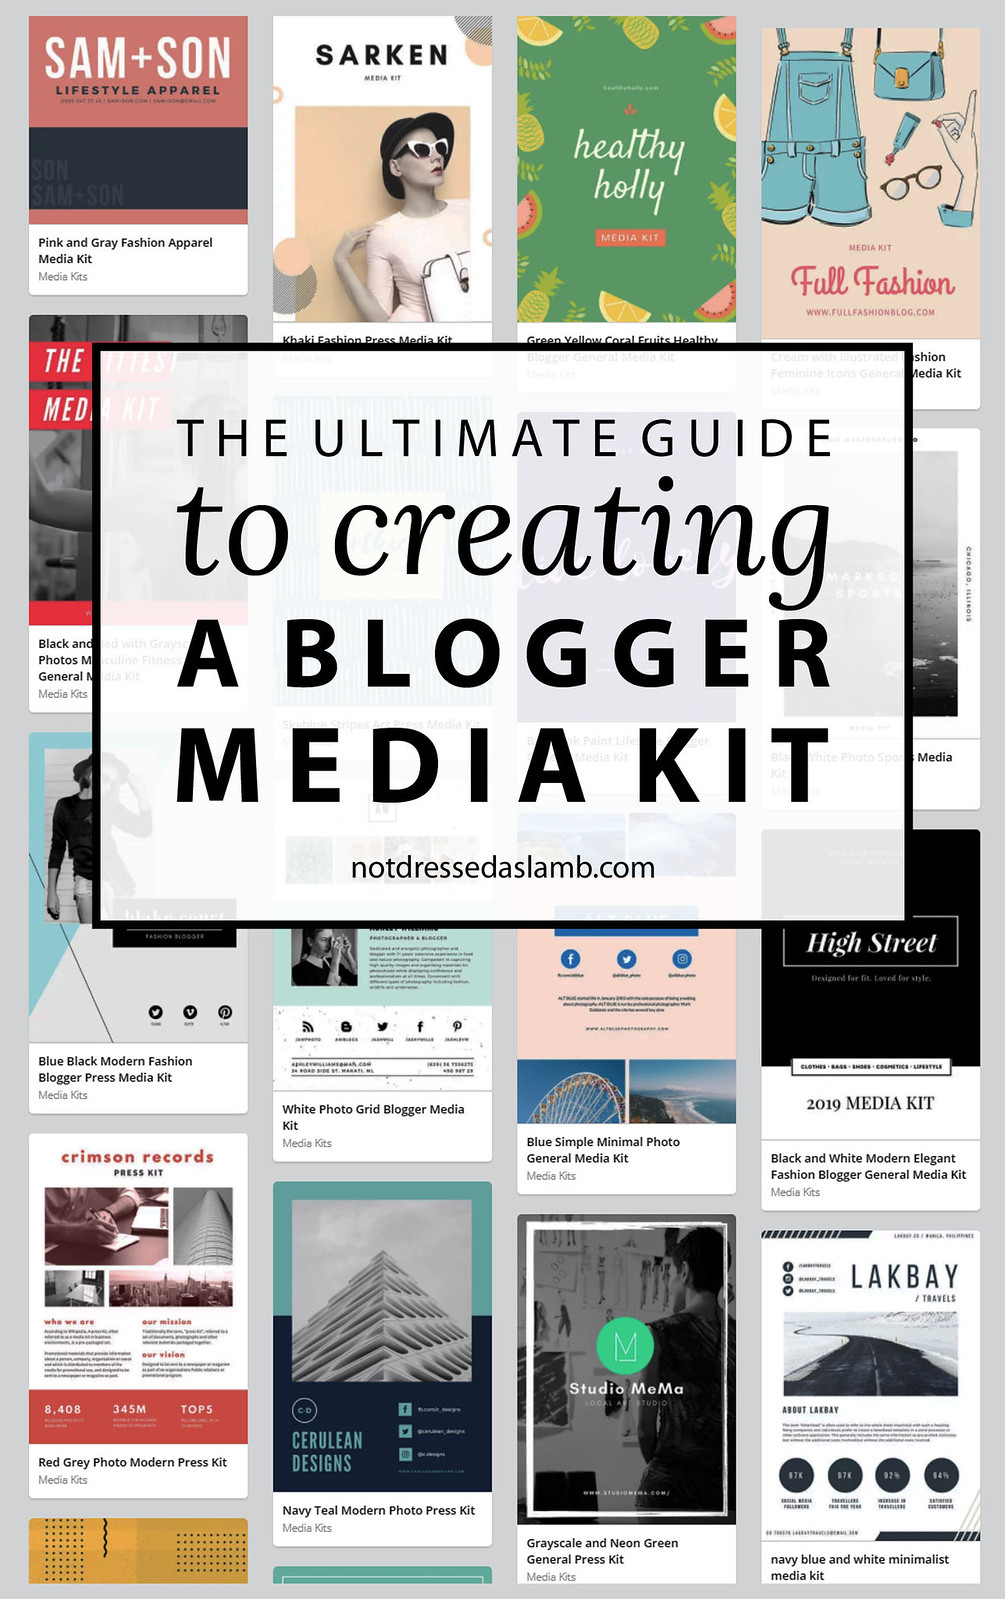 The Ultimate Guide to Creating a Blogger Media Kit